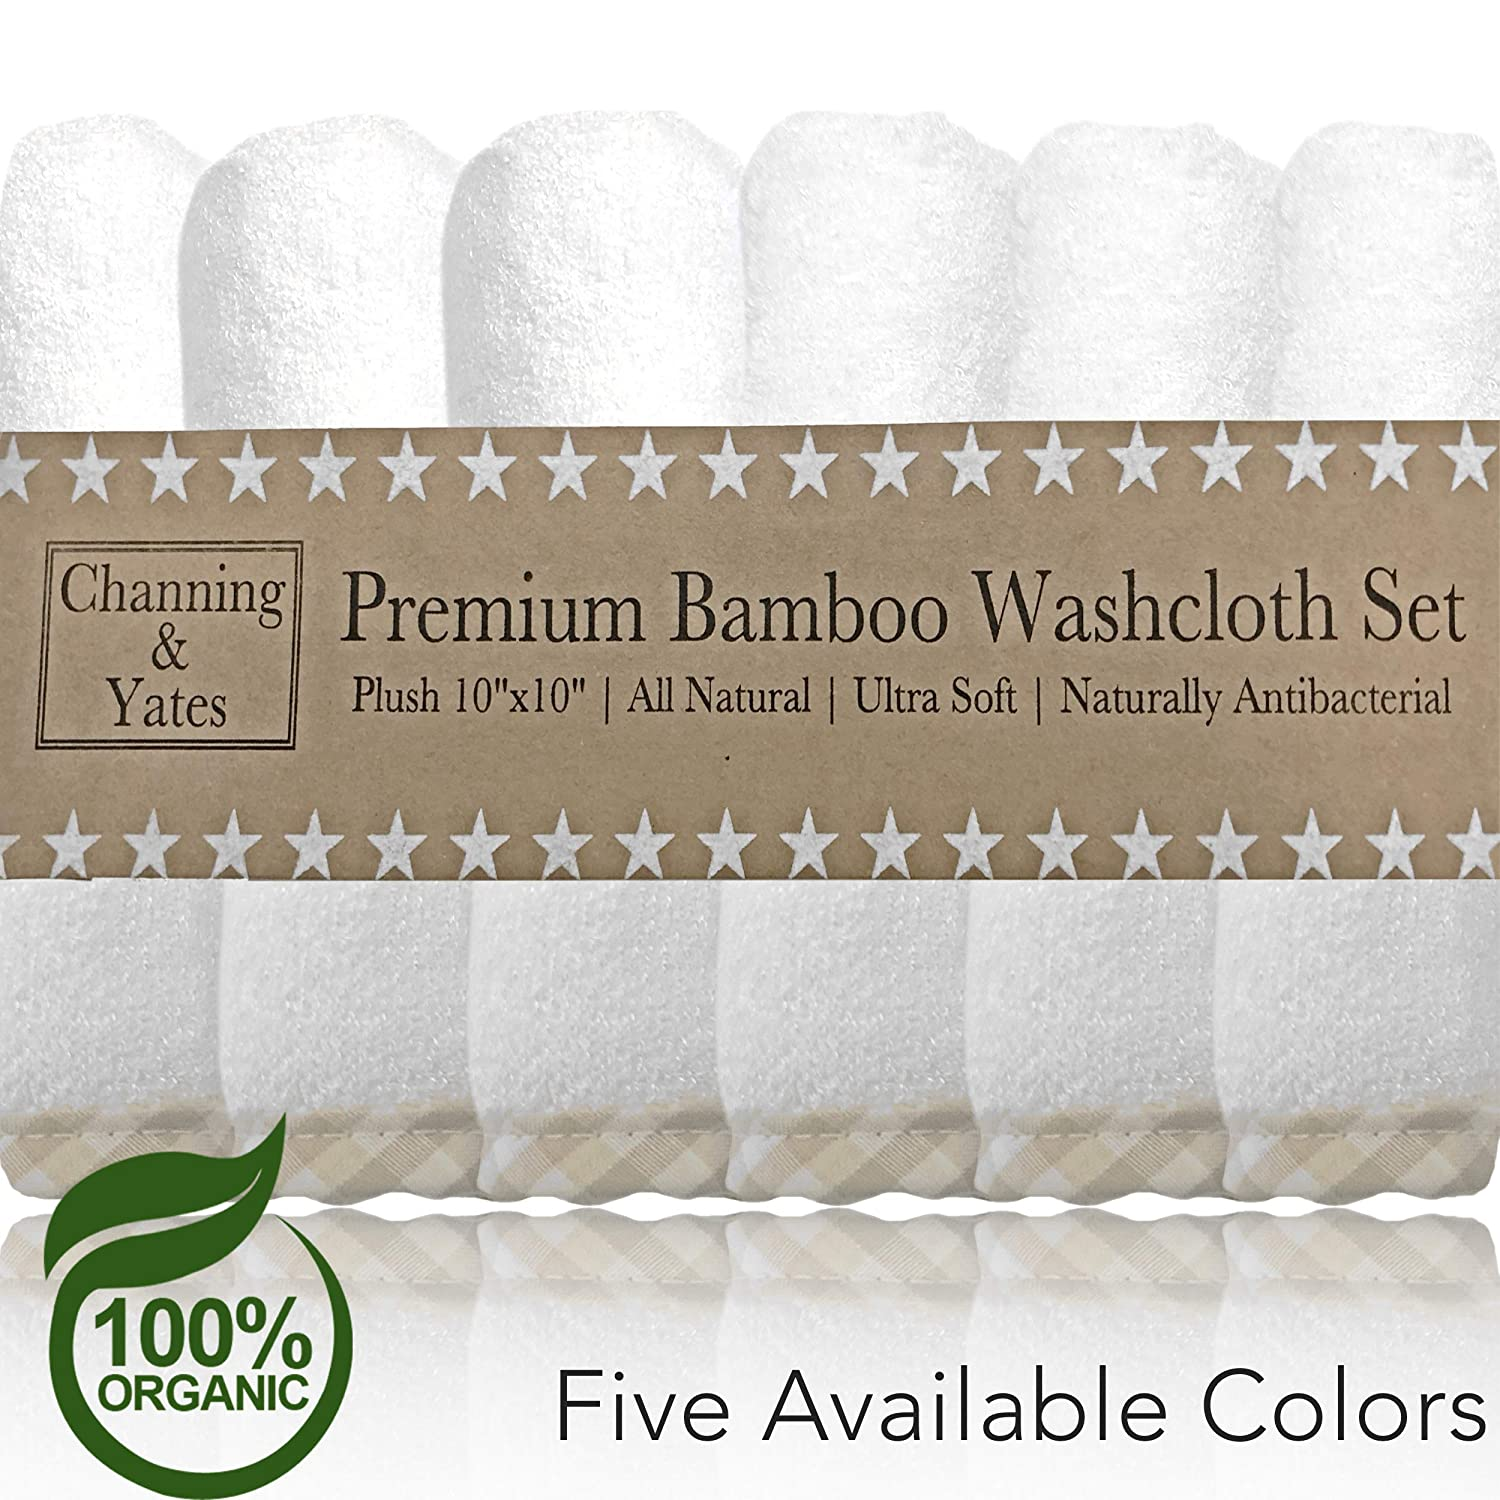 Bamboo Wash Cloth 6 Hypoallergenic /& Antibacterial Extra Soft Thick All Natural